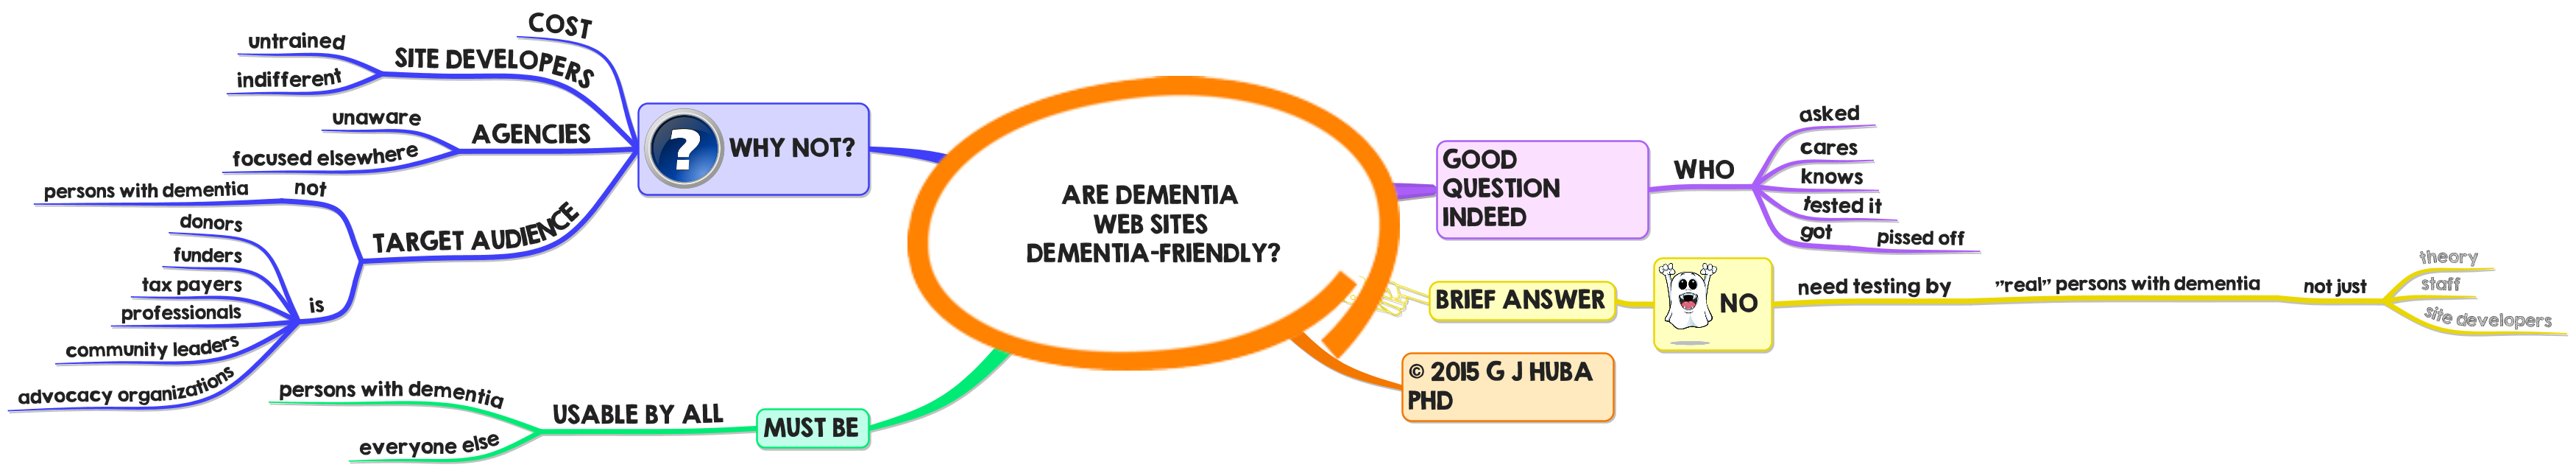 3Are Dementia Web Sites Dementia-Friendly